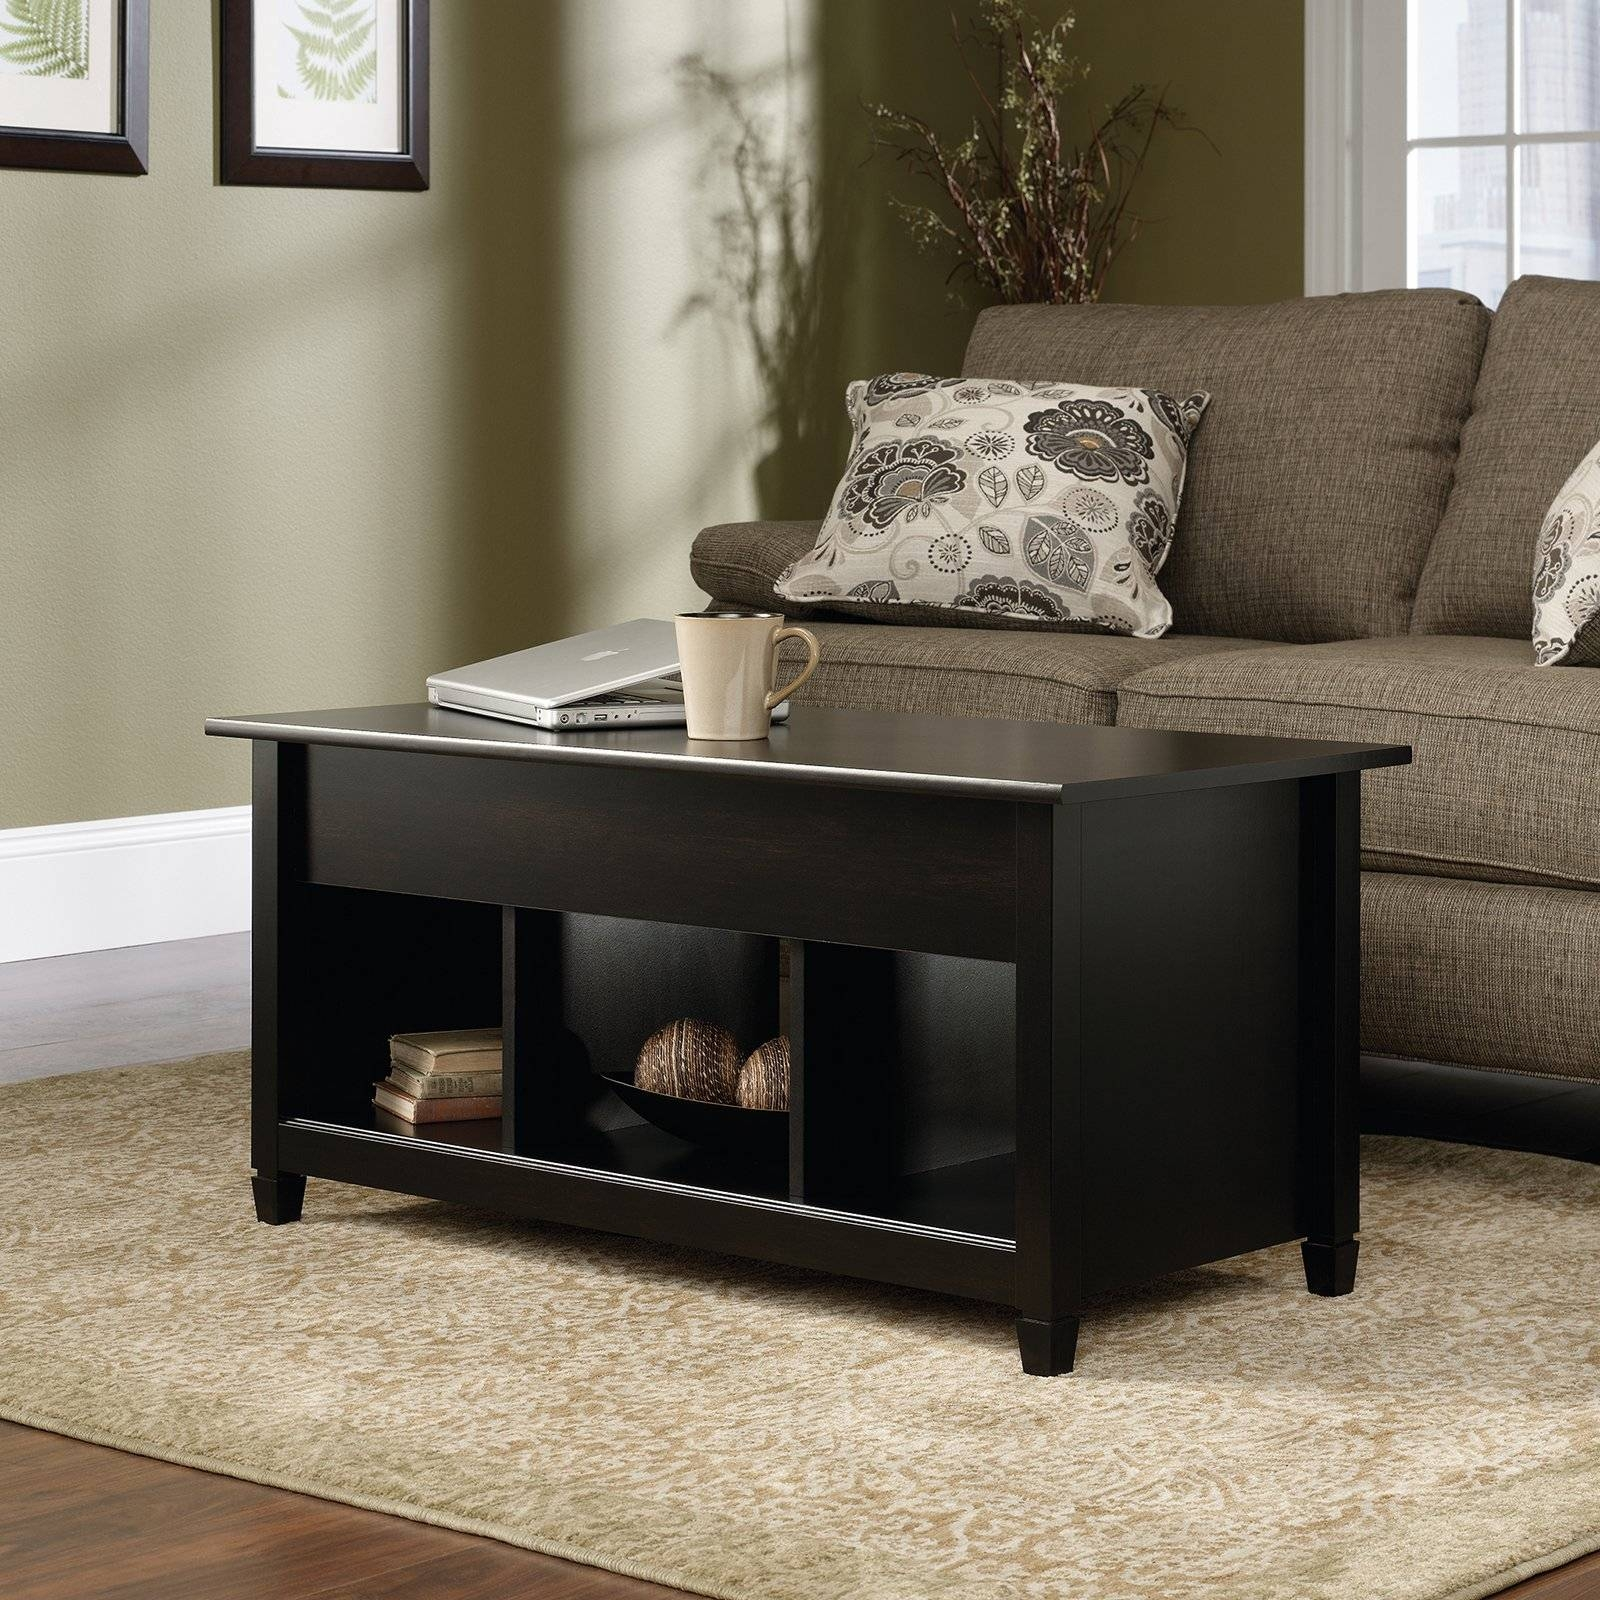 Turner Lift Top Coffee Table - Espresso | Hayneedle within Lift Top Coffee Tables (Image 26 of 30)